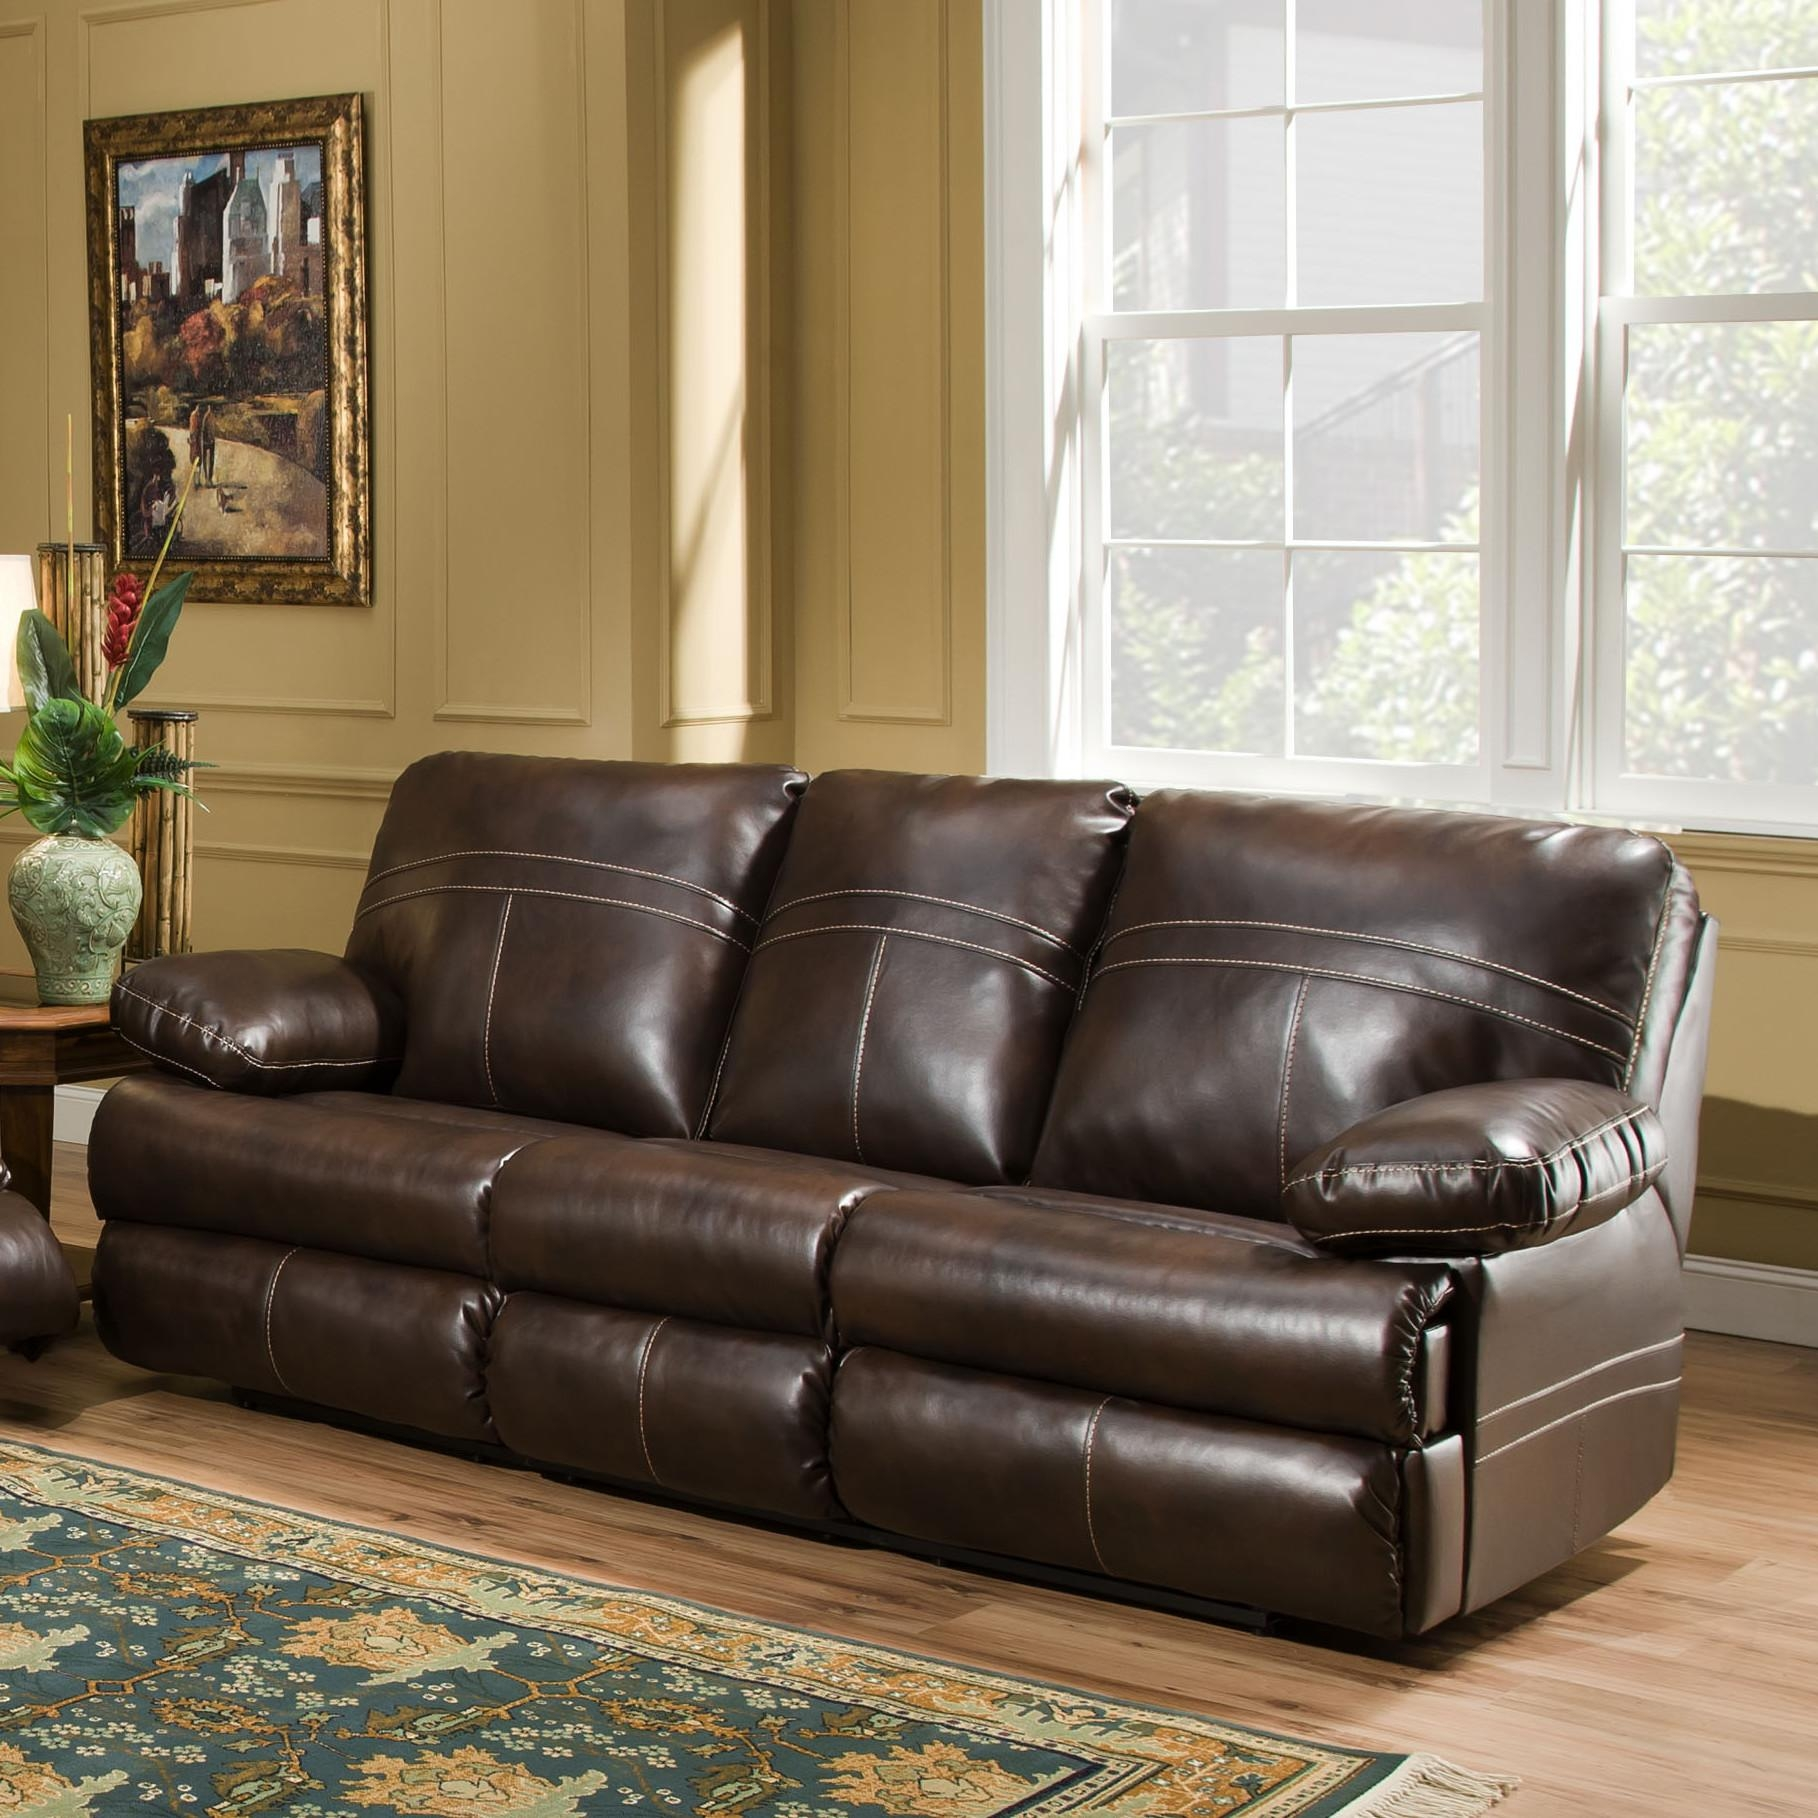 Ashley Pull Out Sofa 20 Inspirations Big Lots Couches | Sofa Ideas